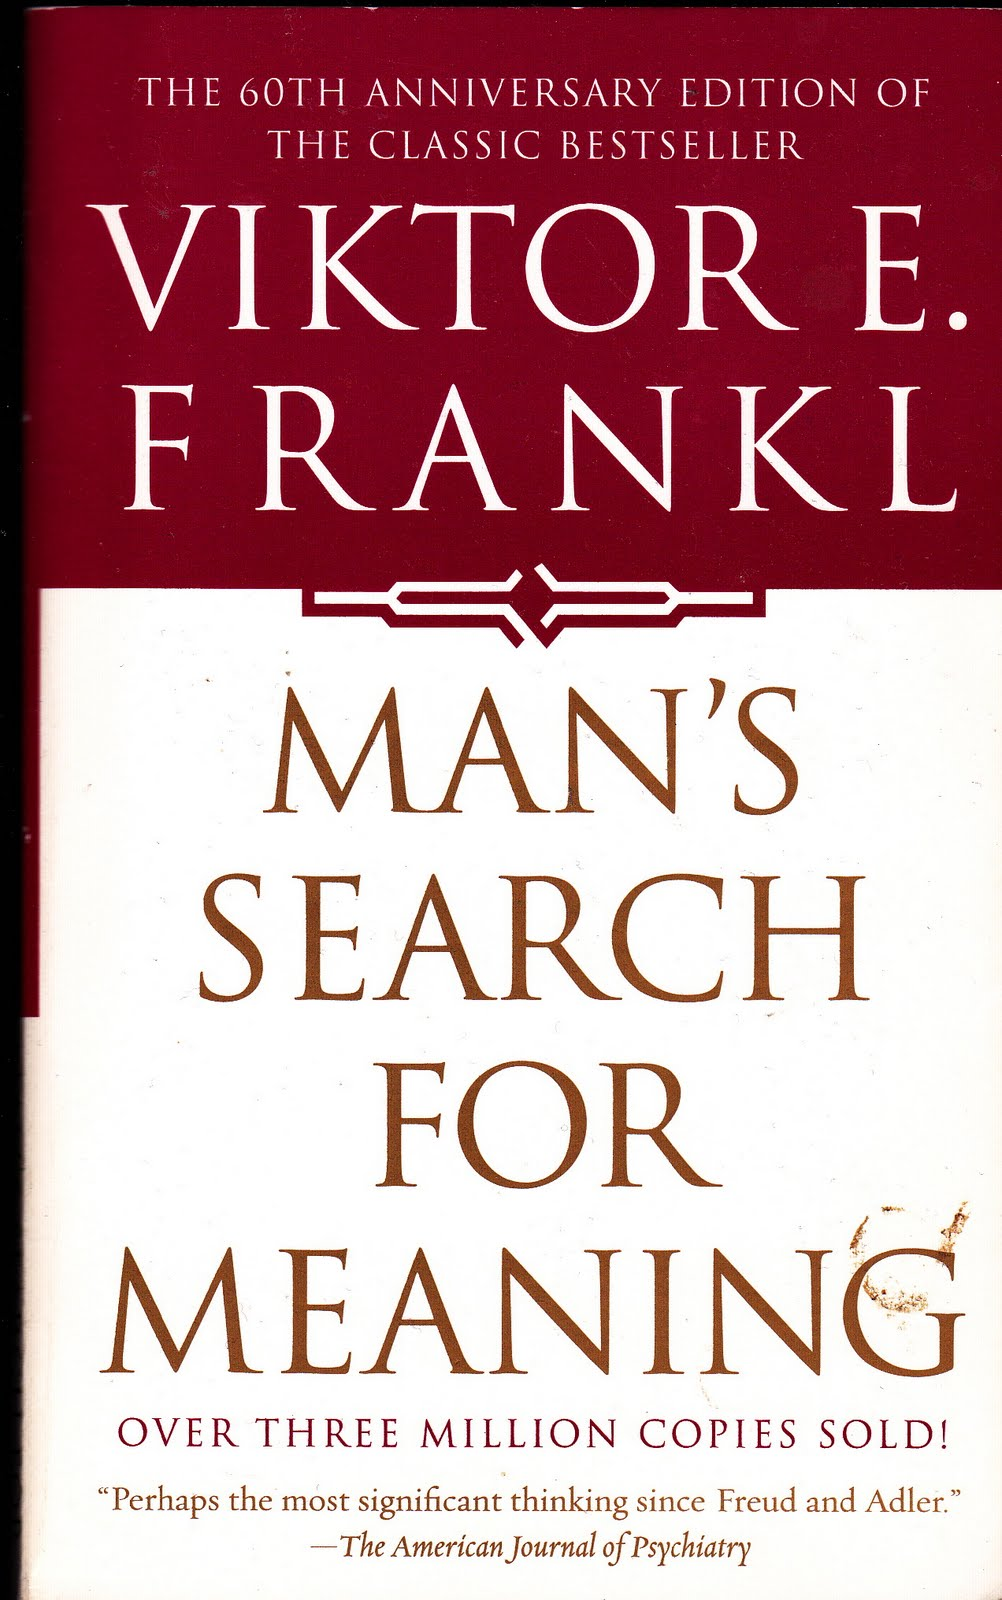 essay on mans search for meaning Free essays from bartleby | man's search for meaning viktor frankl's concept regarding survival and fully living was developed through his observations and.